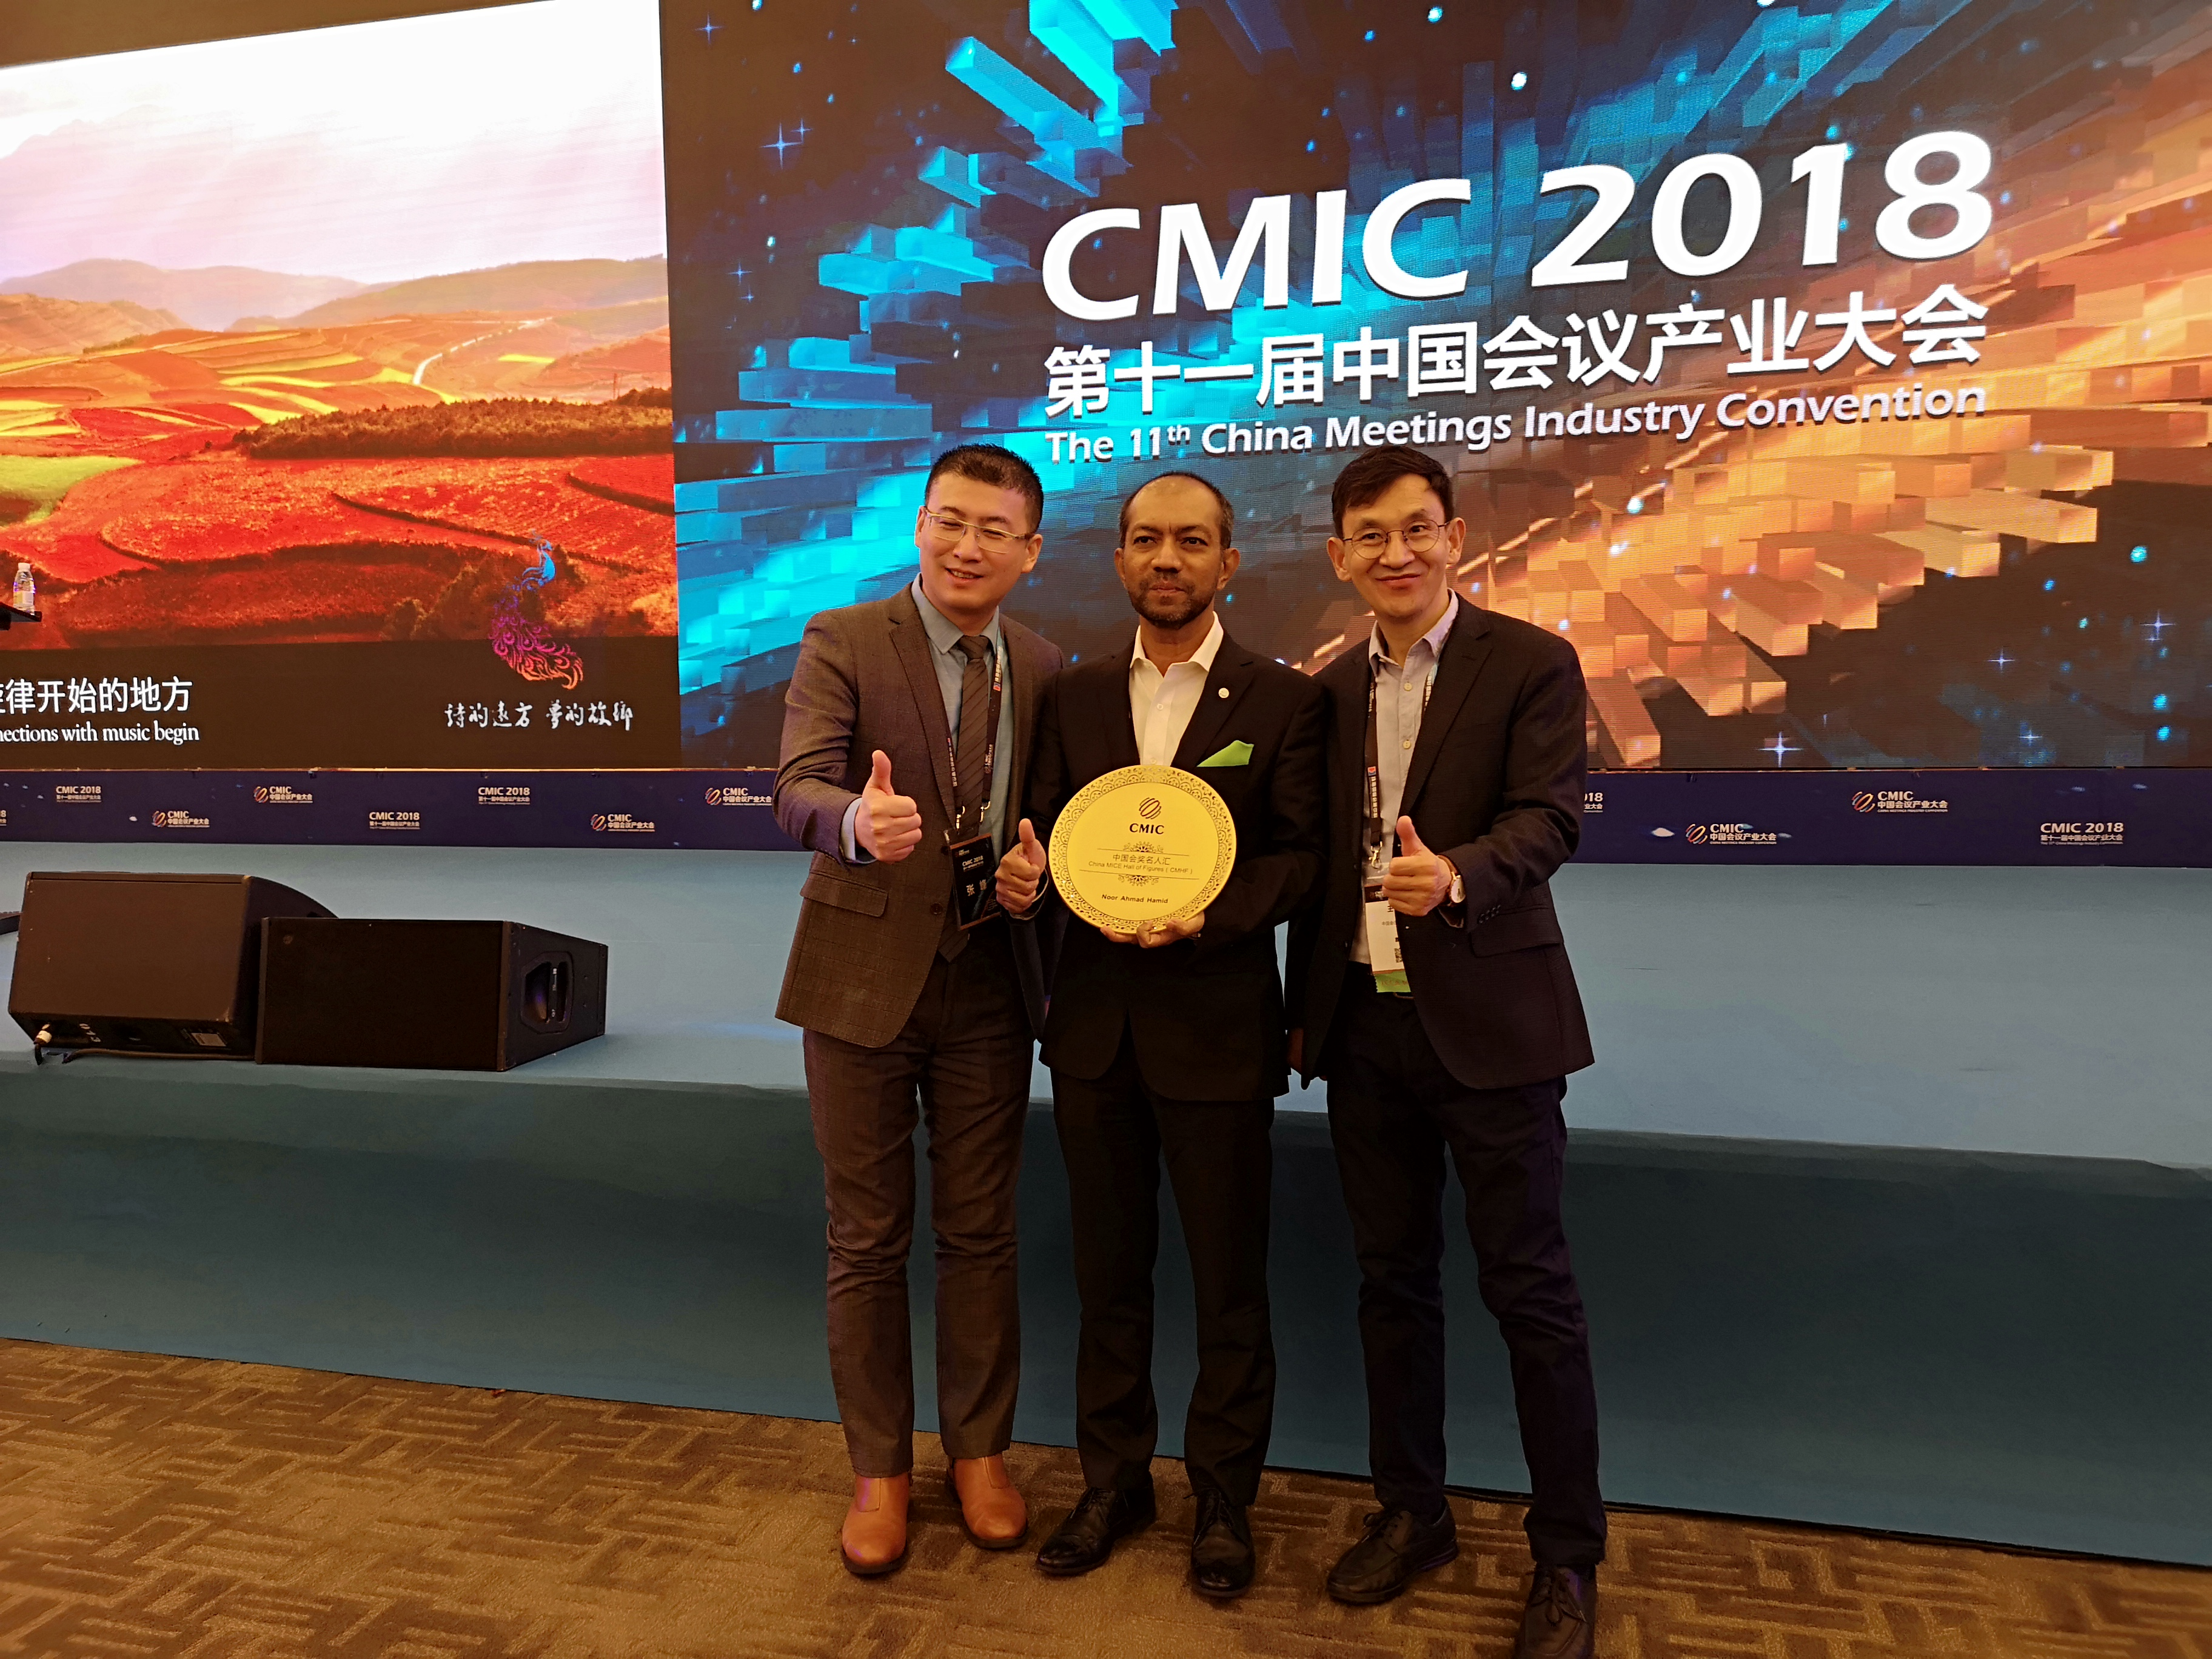 ICCA Regional Director Asia Pacific Noor Ahmad Hamid has become the first non-Chinese recipient of the China MICE Hall of Figures Award, a prestigious accolade which honours those who have contributed to the advancement of China's meetings industry.